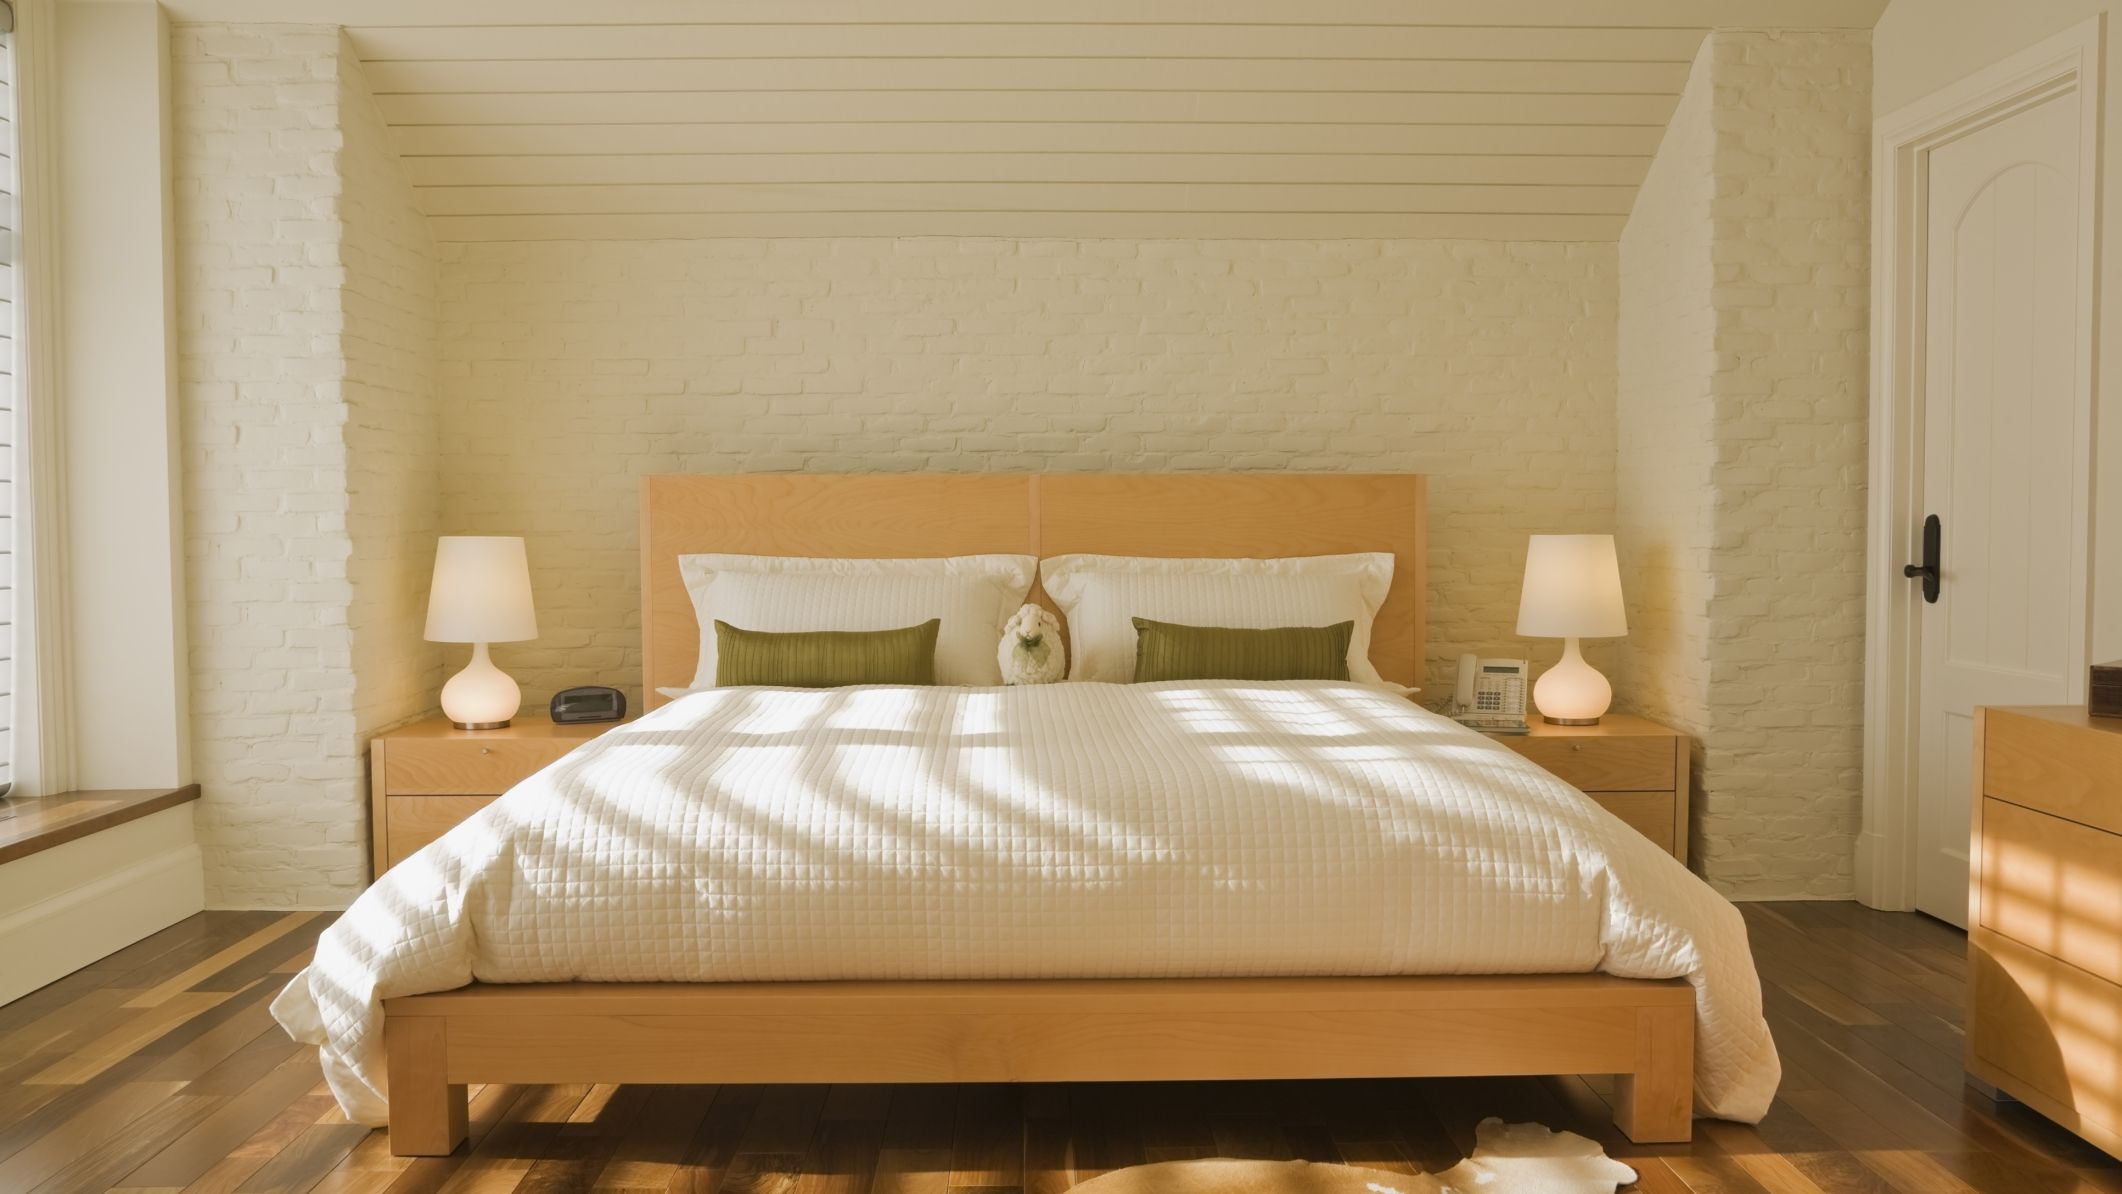 28/03/2020· here are 3 best feng shui bedroom layouts #1 feng shui bedroom layout. Creating The Ideal Bedroom According To Feng Shui